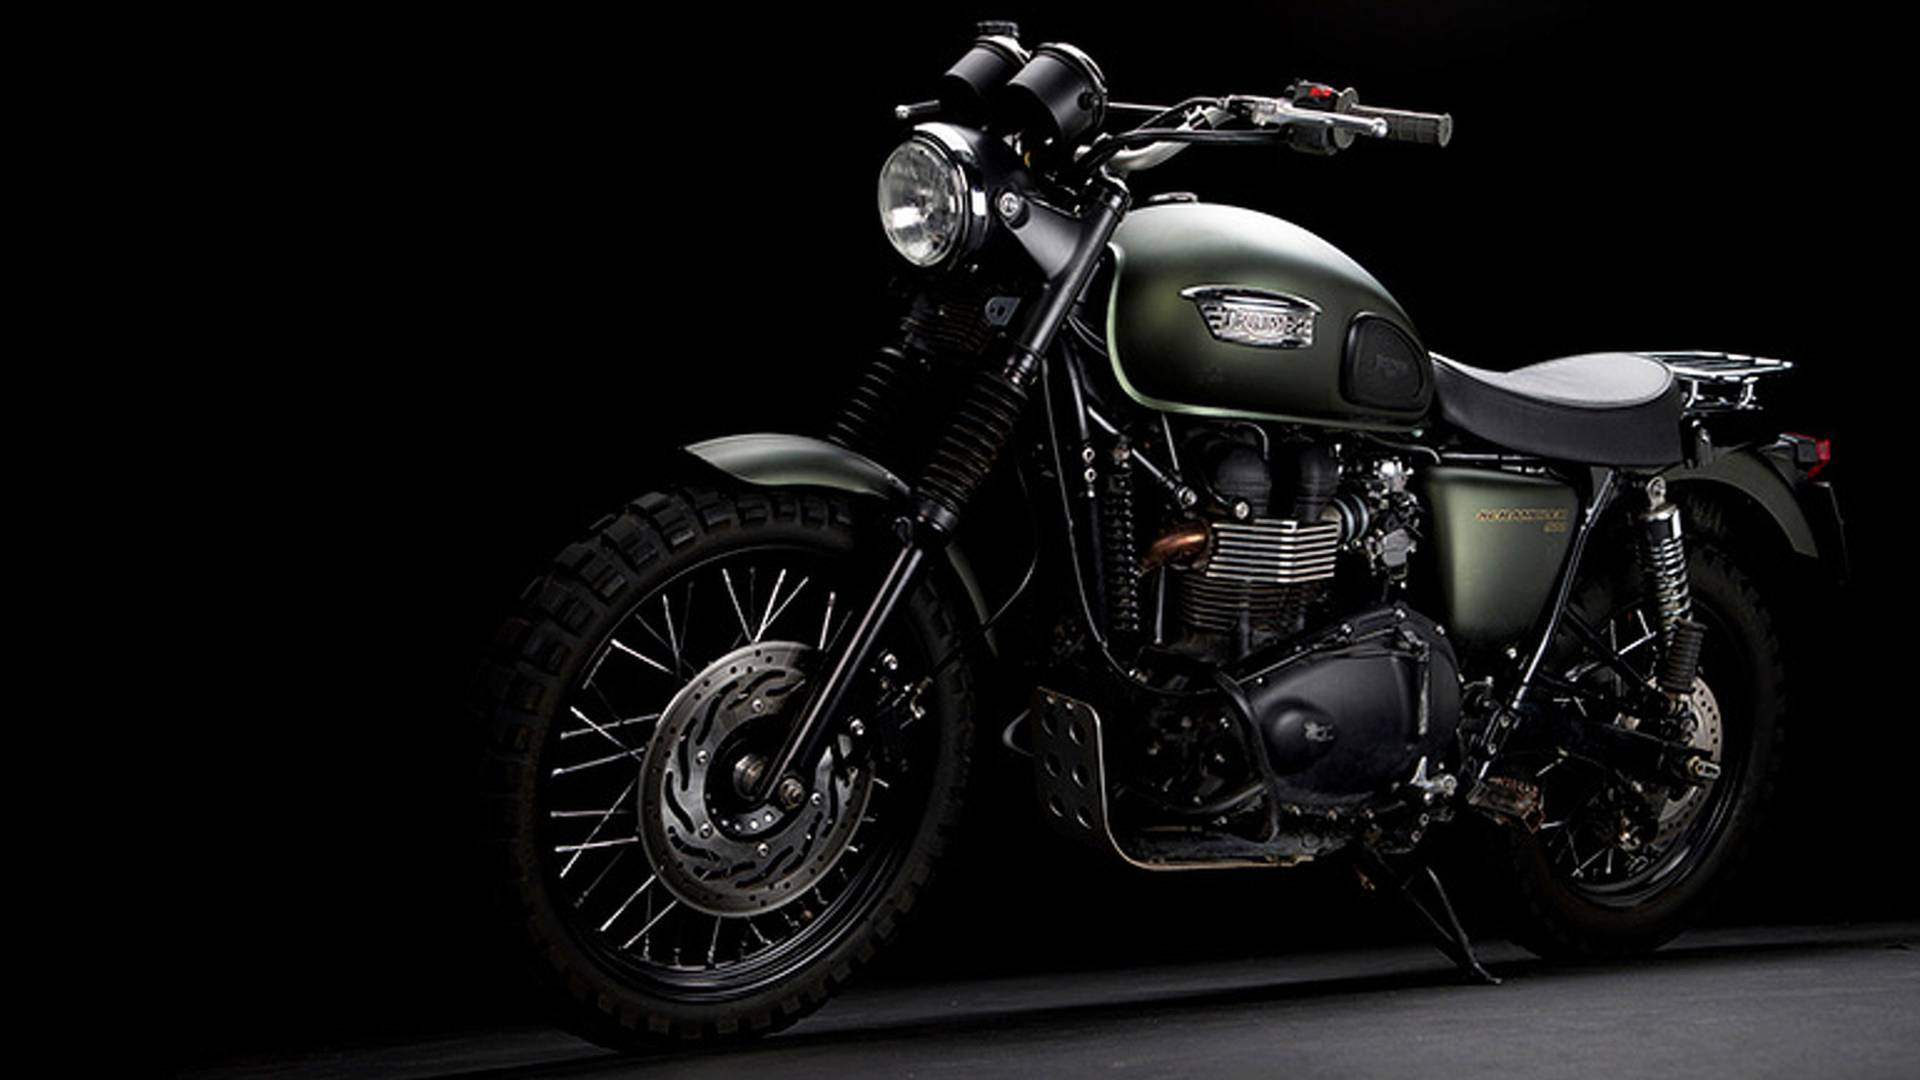 The Jurassic World Triumph Scrambler The Clone The Mistakes And